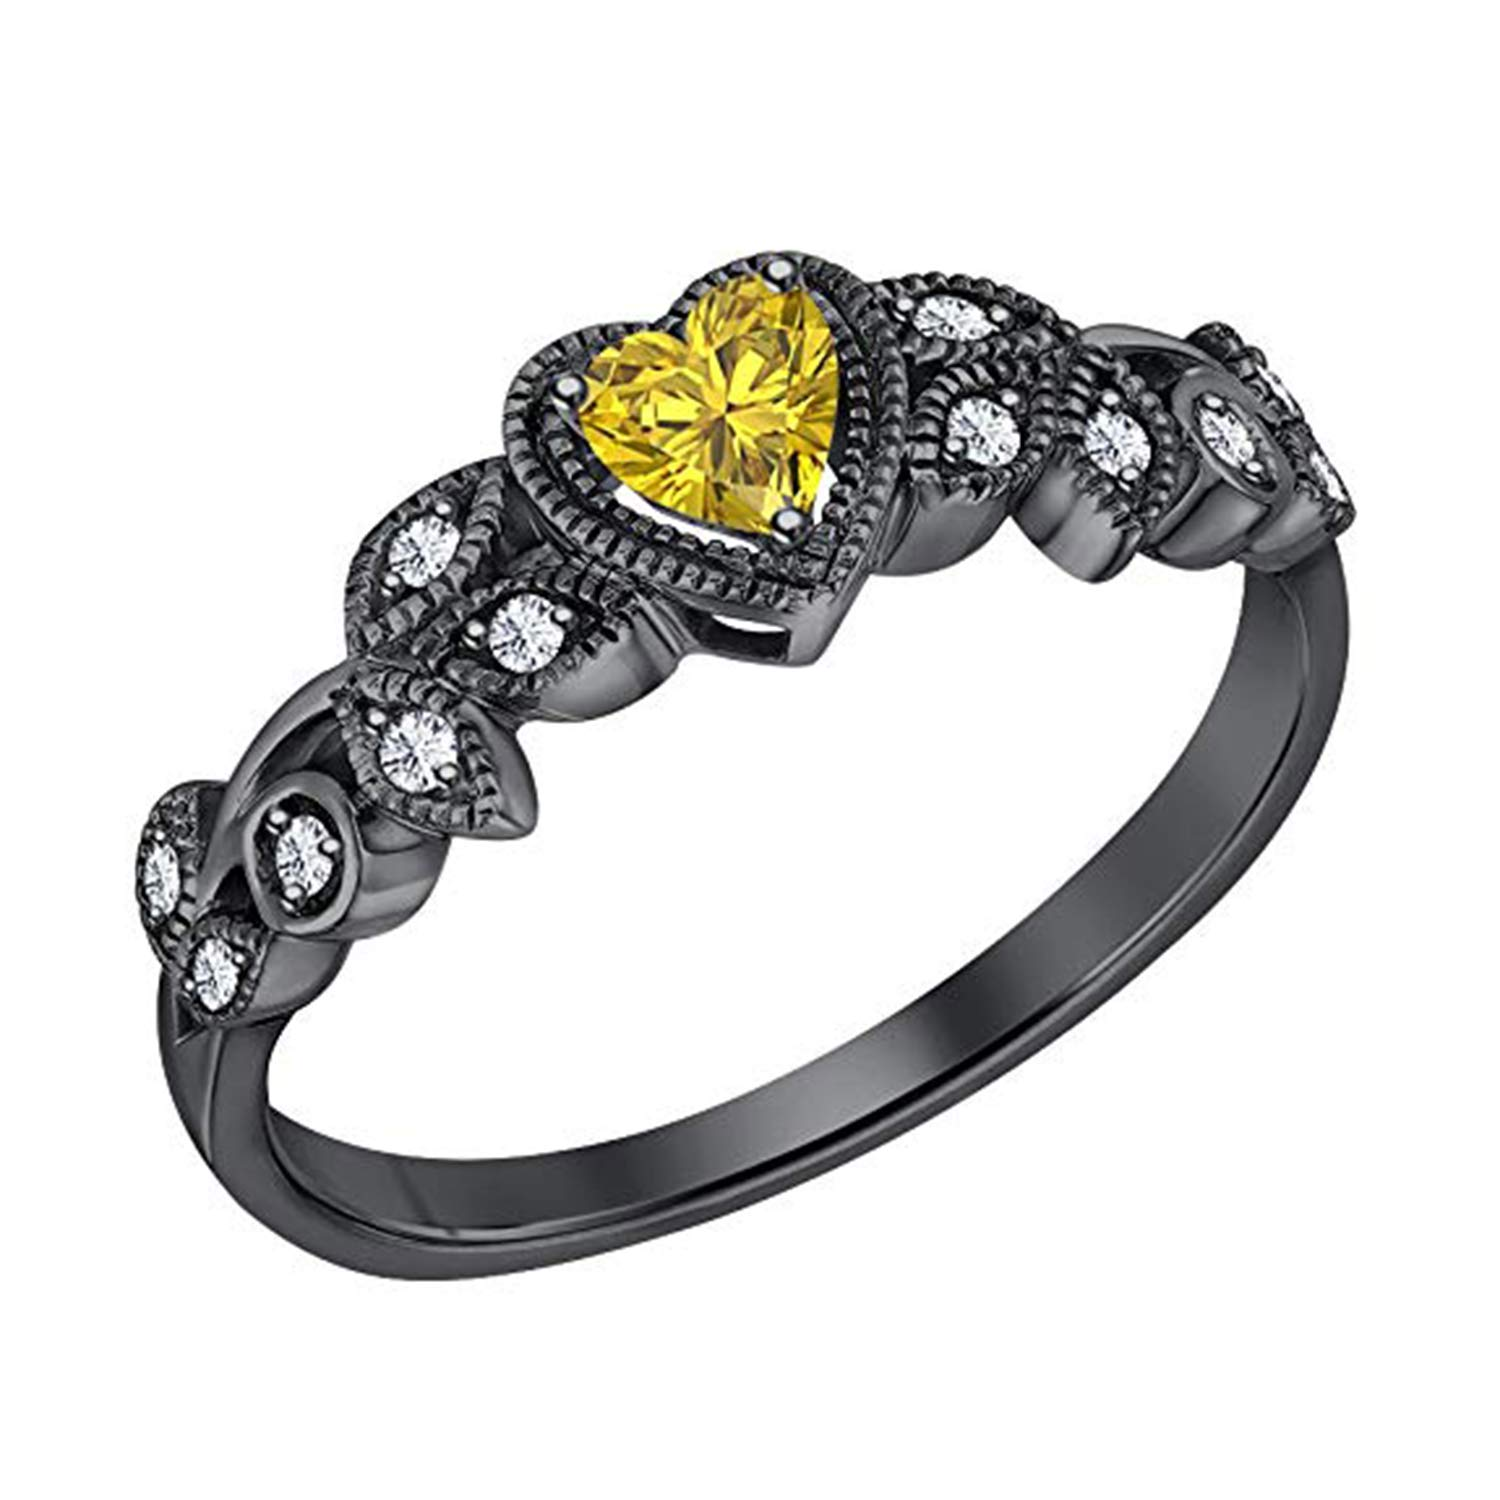 14K Black Gold Plated Fn Simulated Diamond /& Yellow Sapphire Studded Wedding /& Engagement Ring Jewelry